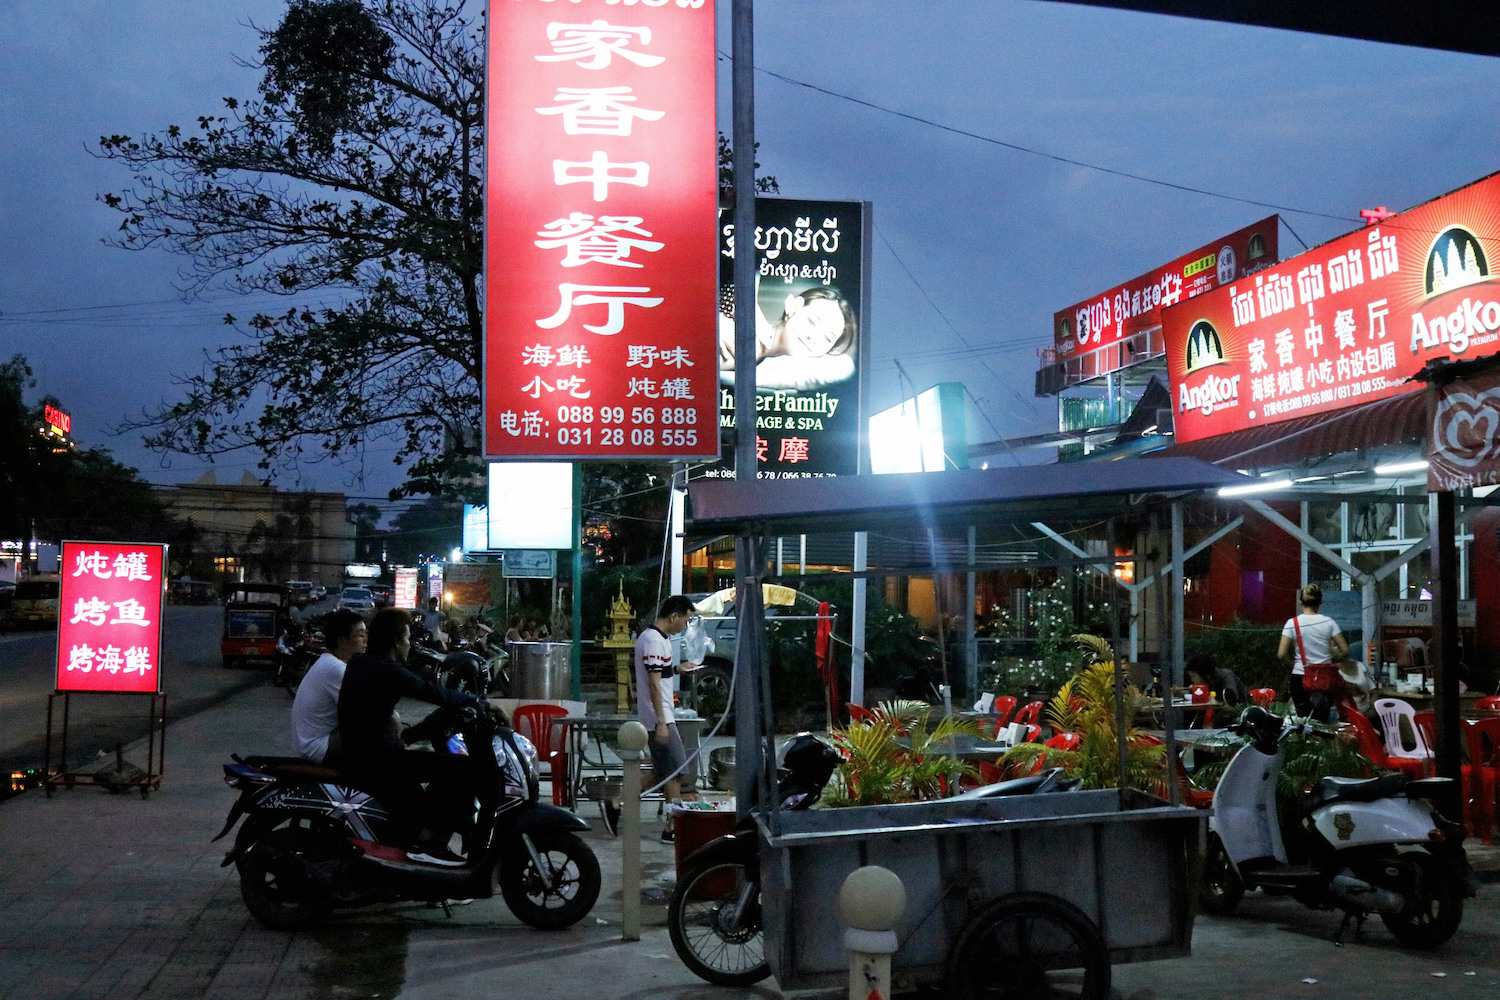 Almost 90% of the tourism businesses in Sihanoukville, ranging from hotels, casinos and restaurants to massage parlours, are now run by Chinese. (Kyodo Photo)